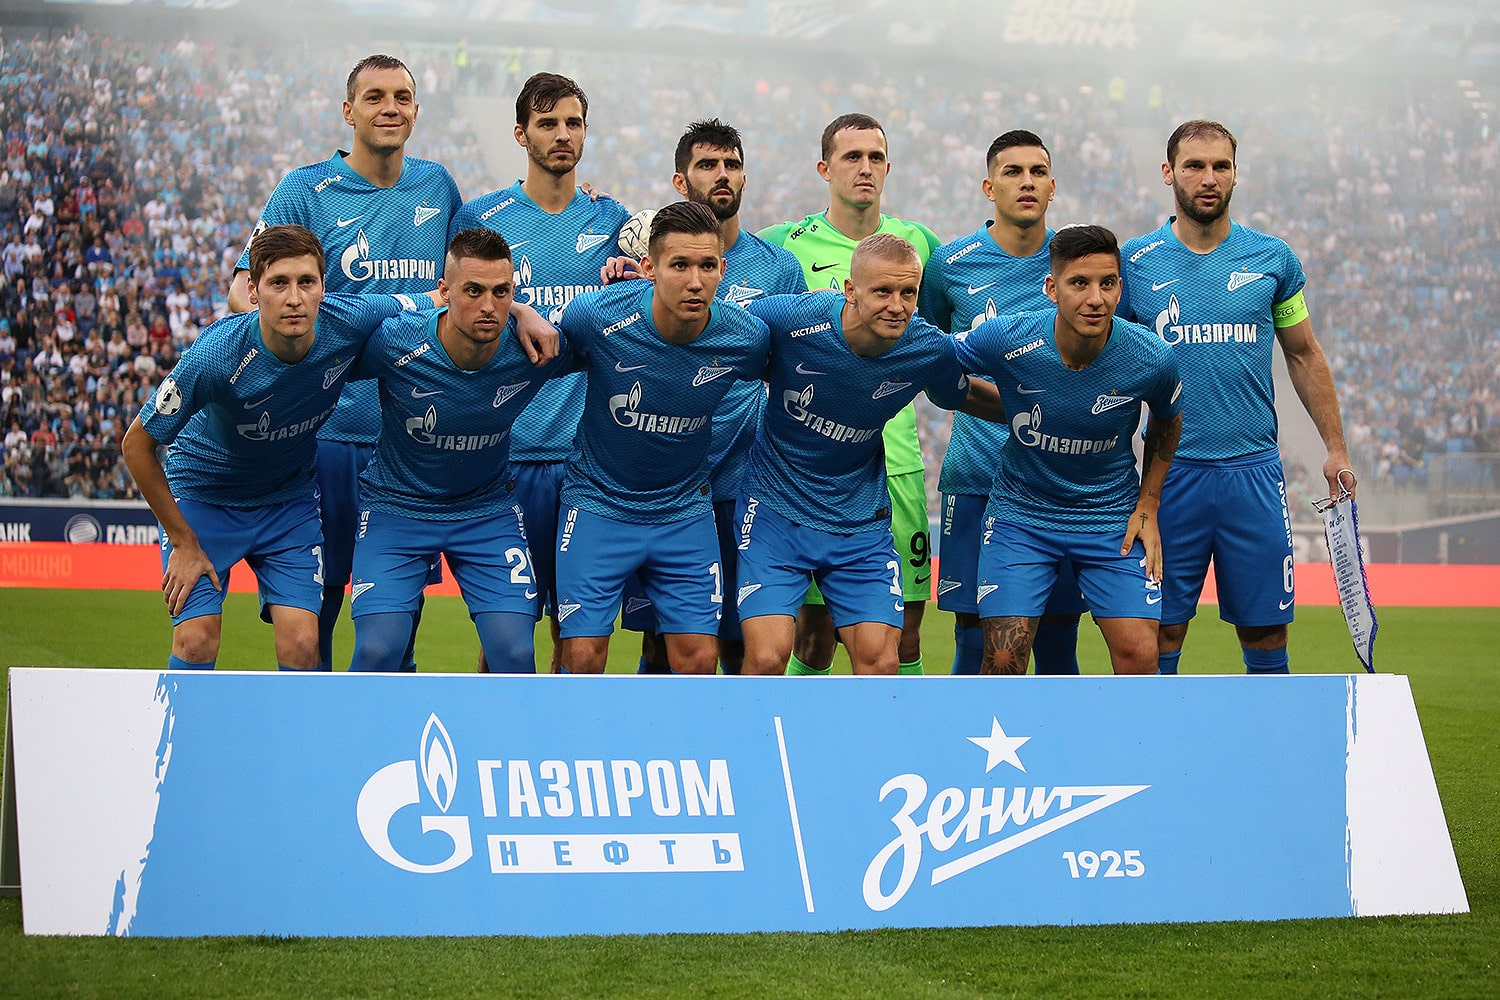 Zenit_Saint_Petersburg_season